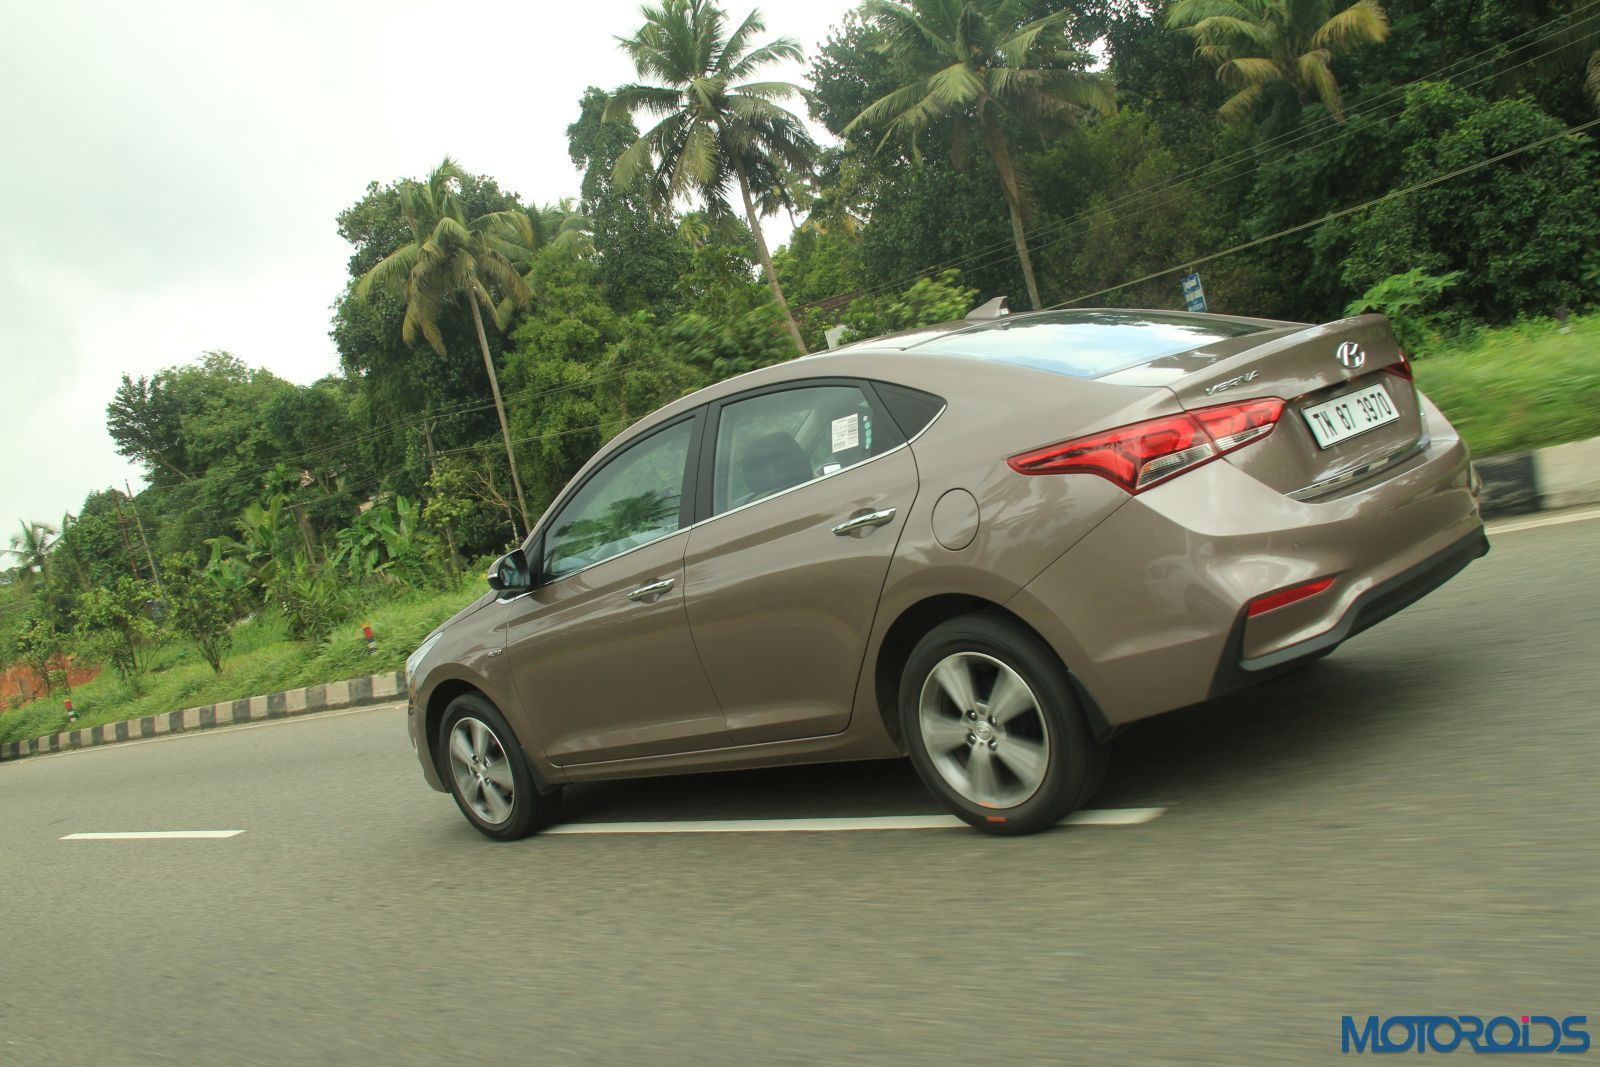 August 28, 2017-New-2017-Next-gen-Hyundai-Verna-motion-shots-brown-3.jpg